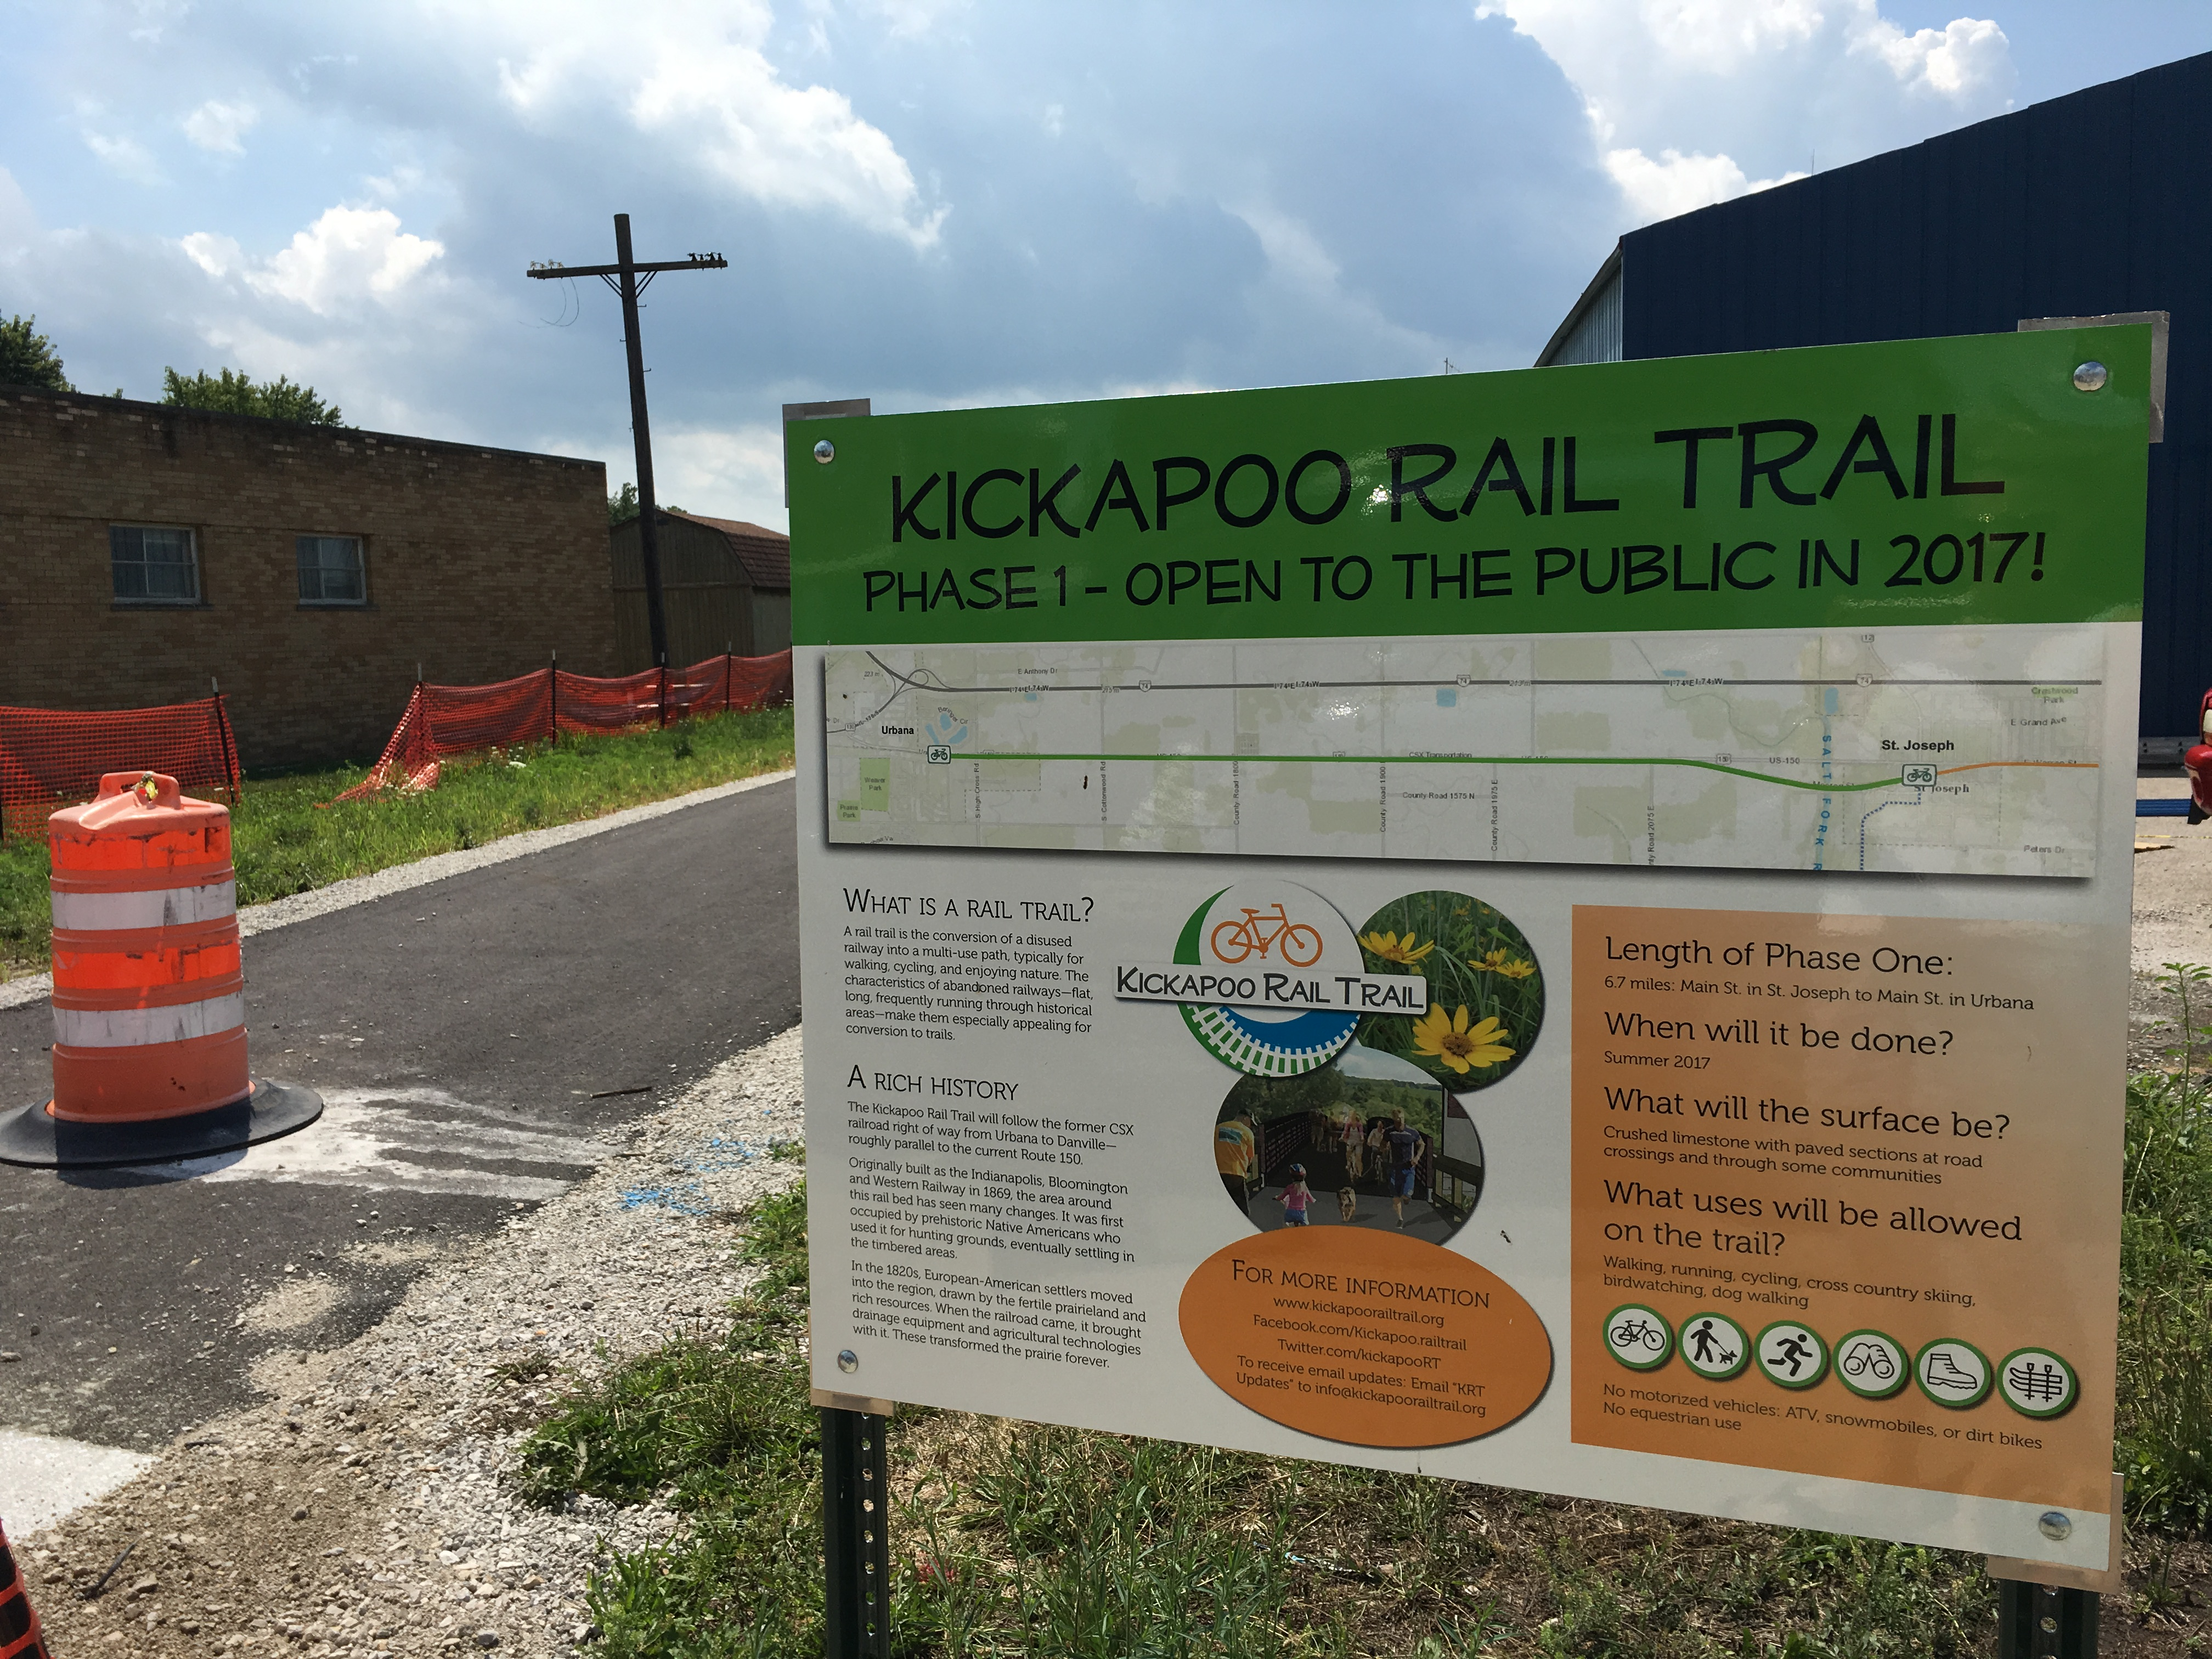 New Kickapoo Rail Trail Opens: What You Need to Know Before You Go on seneca state park trail map, kickapoo park danville il map, new mexico carlsbad caverns national park map, giant city state park trail map, lincoln park trail map, starved rock state park trail map, randolph state park trail map, caledonia state park trail map, susquehannock state park trail map, ferne clyffe state park trail map, fox ridge state park trail map, belmont state park trail map, shawnee state park trail map, mississippi palisades state park trail map, kankakee river state park trail map, massasoit state park trail map, kickapoo bike trail map trail map, pyramid state park trail map, ponca state park trail map, apple river canyon state park trail map,